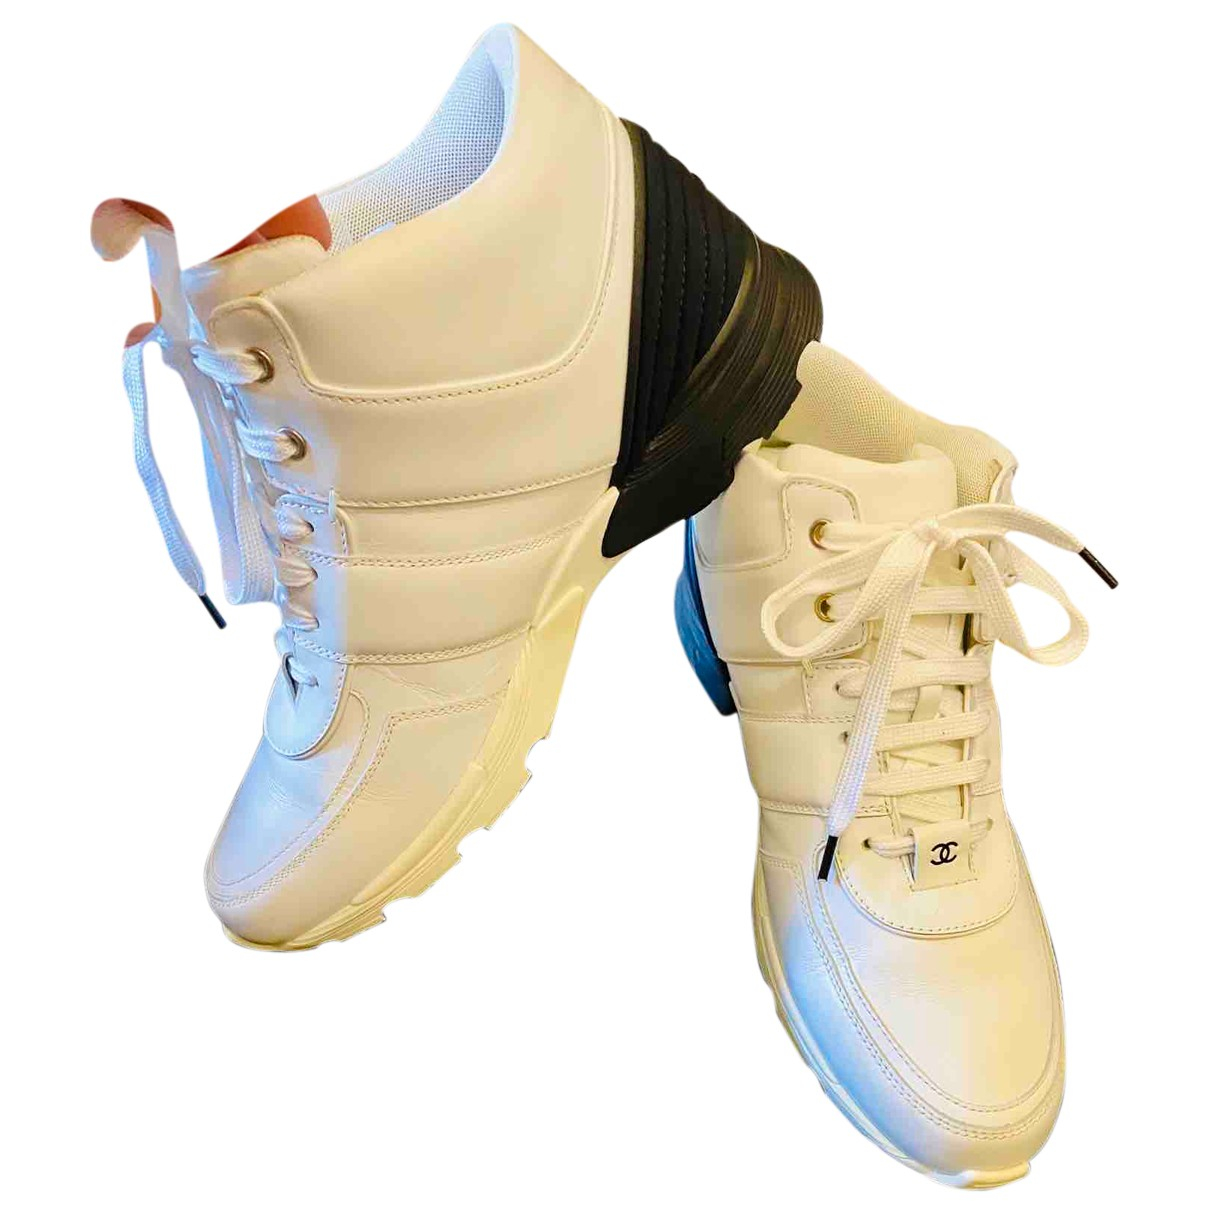 Chanel \N Sneakers in  Weiss Leder